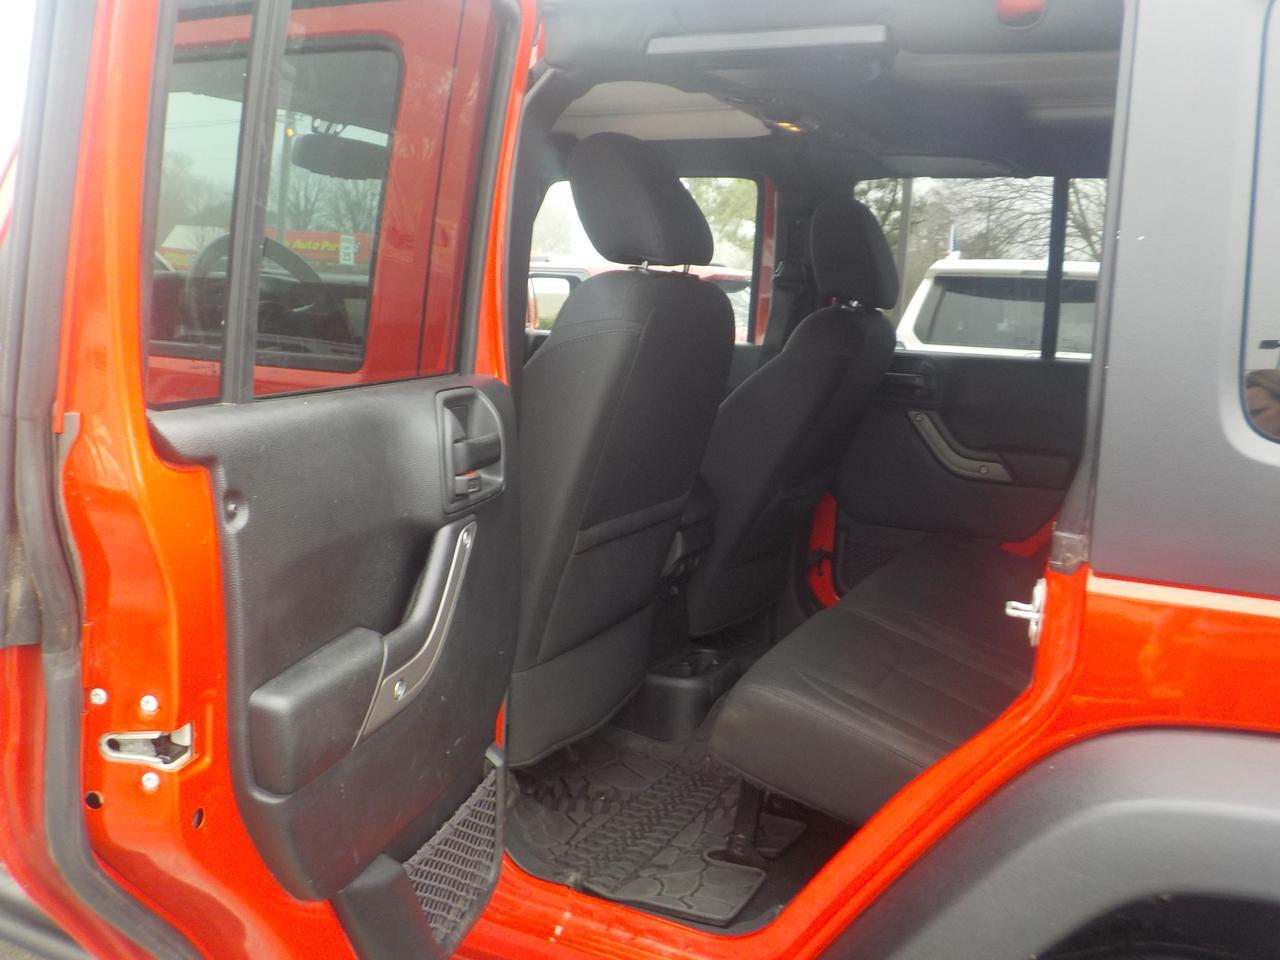 2017 JEEP WRANGLER UNLIMITED SPORT 4X4, ONE OWNER, HARD TOP, MICKEY THOMPSON WHEELS, TOW PACKAGE, ONLY 45K MILES!! Virginia Beach VA